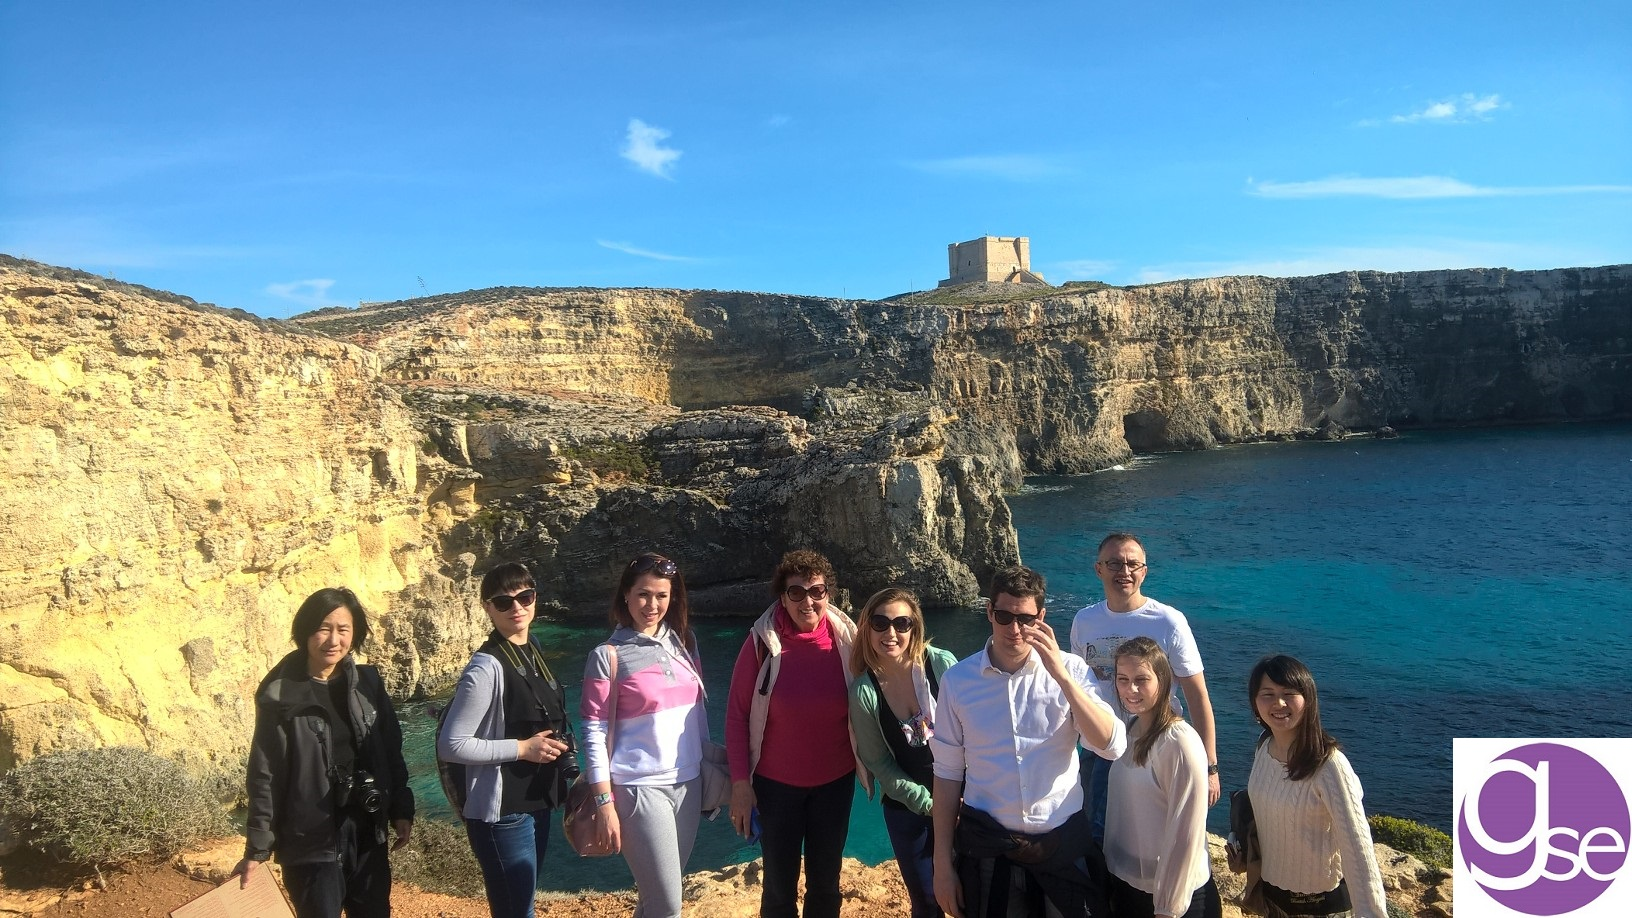 gse-malta-social-programme-gozo-comino-full-day-group-photo-on-comino